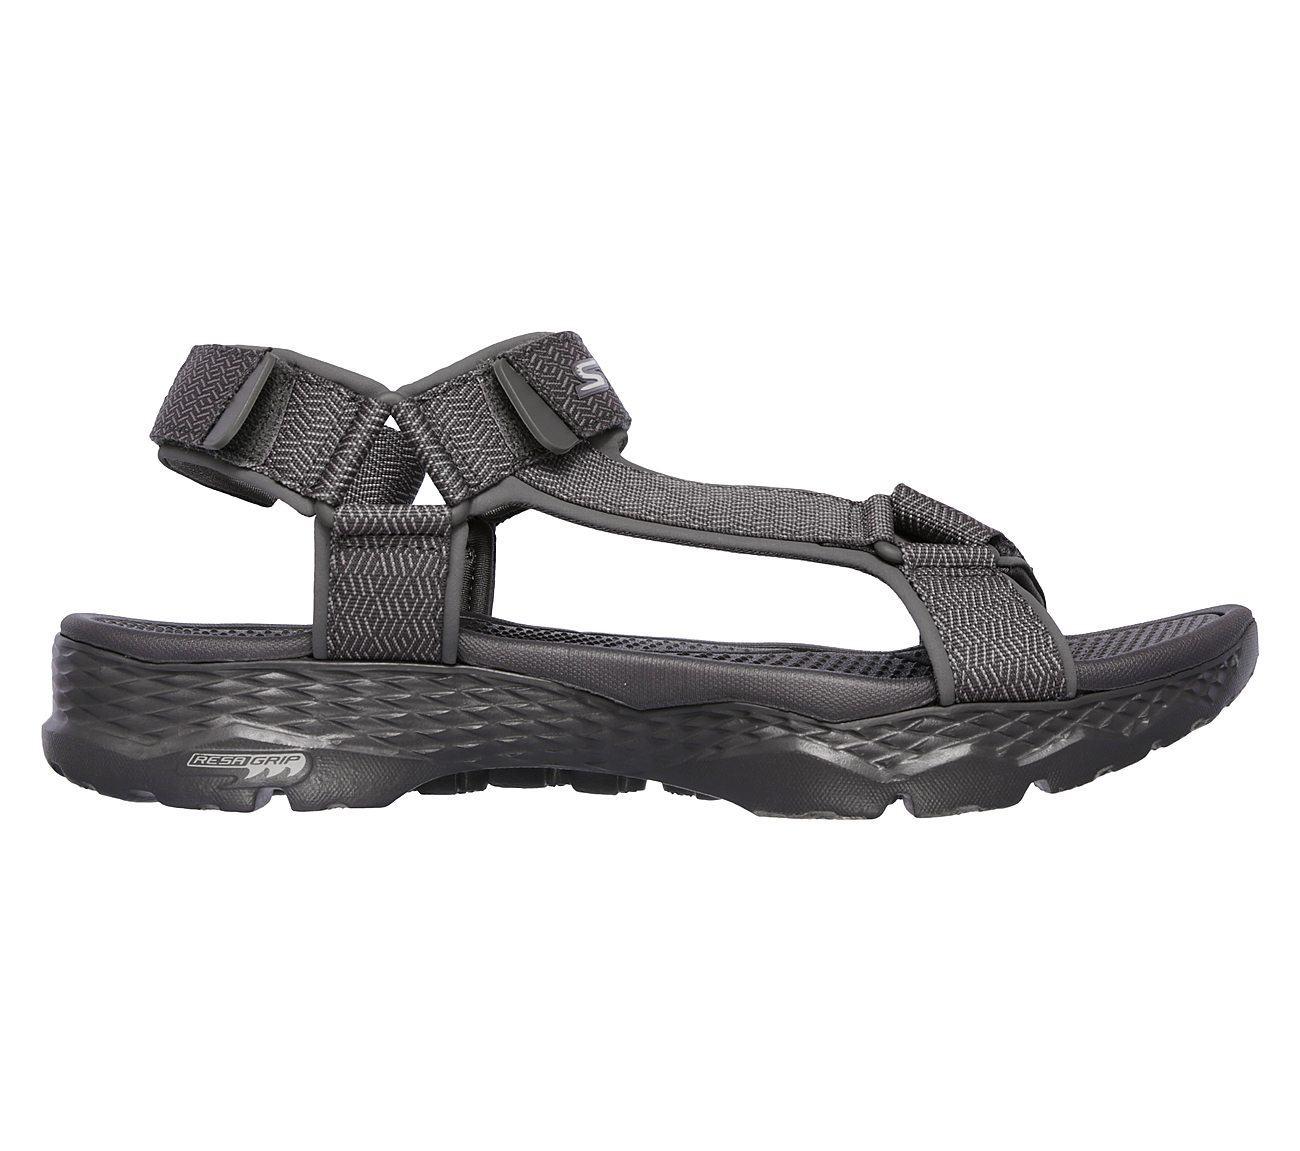 Skechers Men's, Go Walk Outdoors Nature Sandals Charcoal 7 M